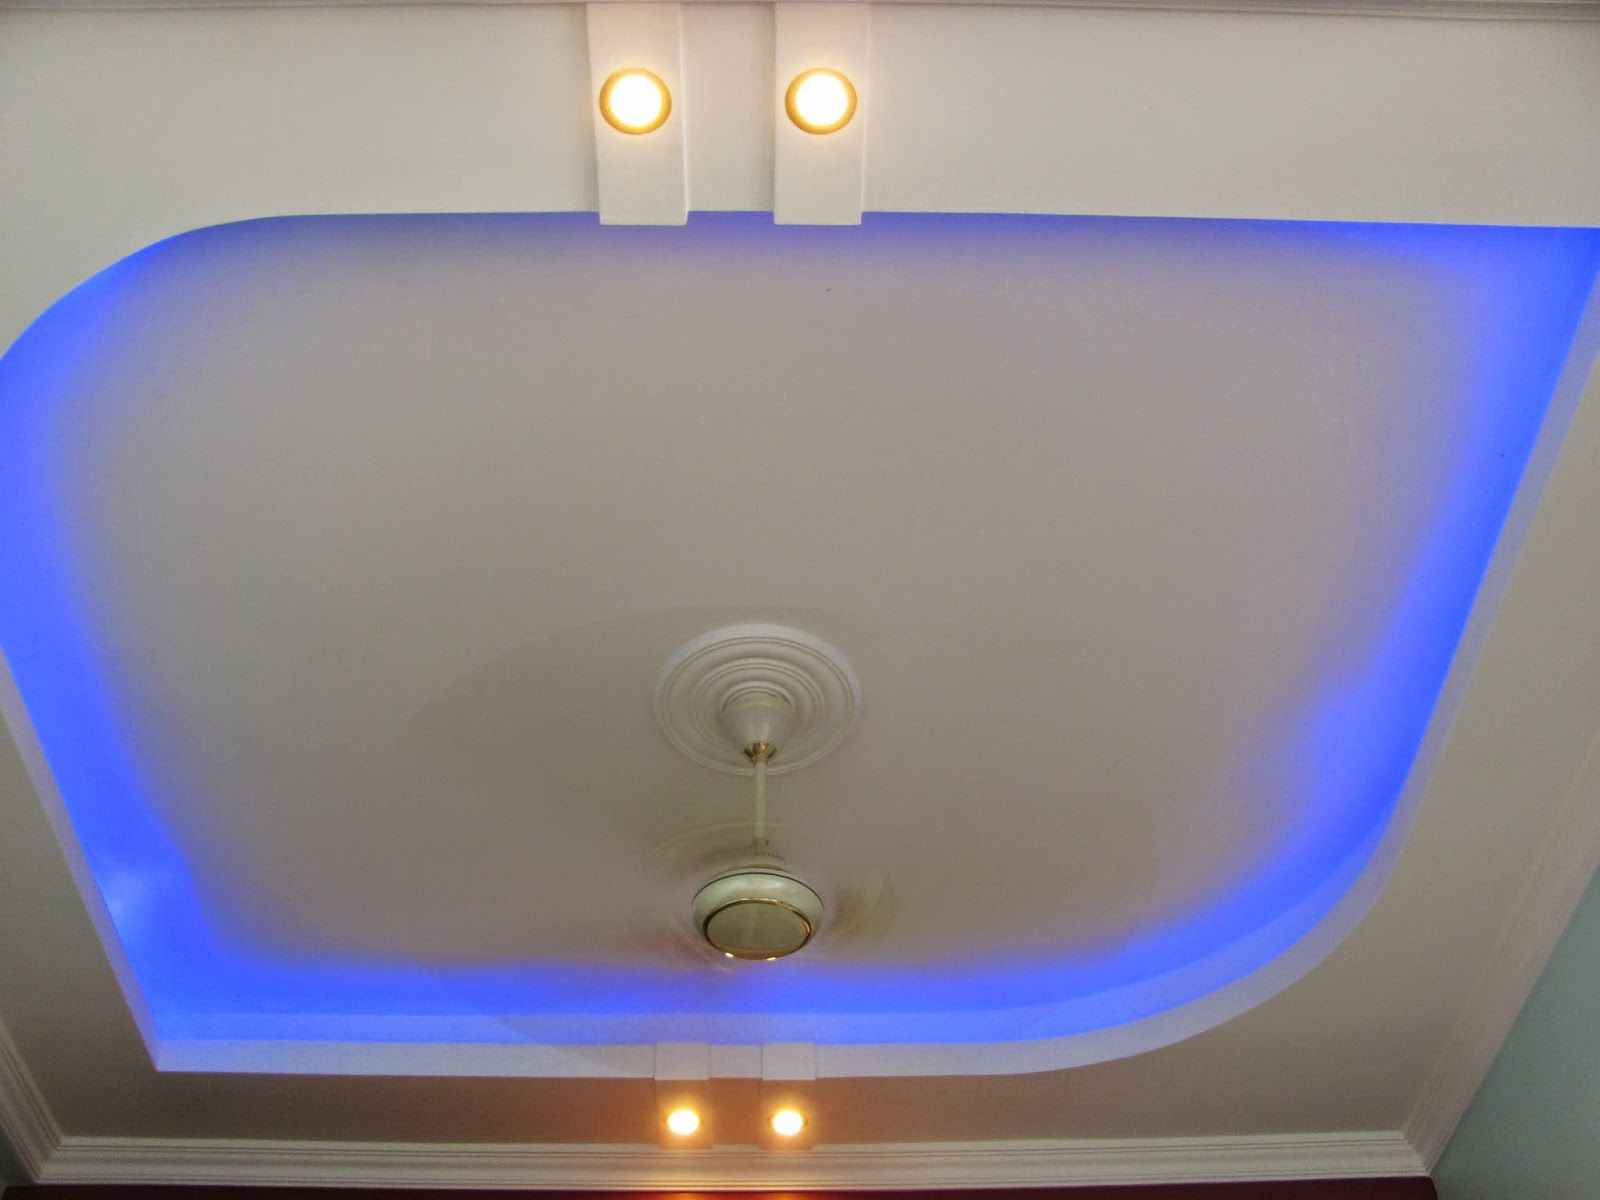 Gypsum Board False Ceiling Design In Style Of Tear For Living Room Part 41